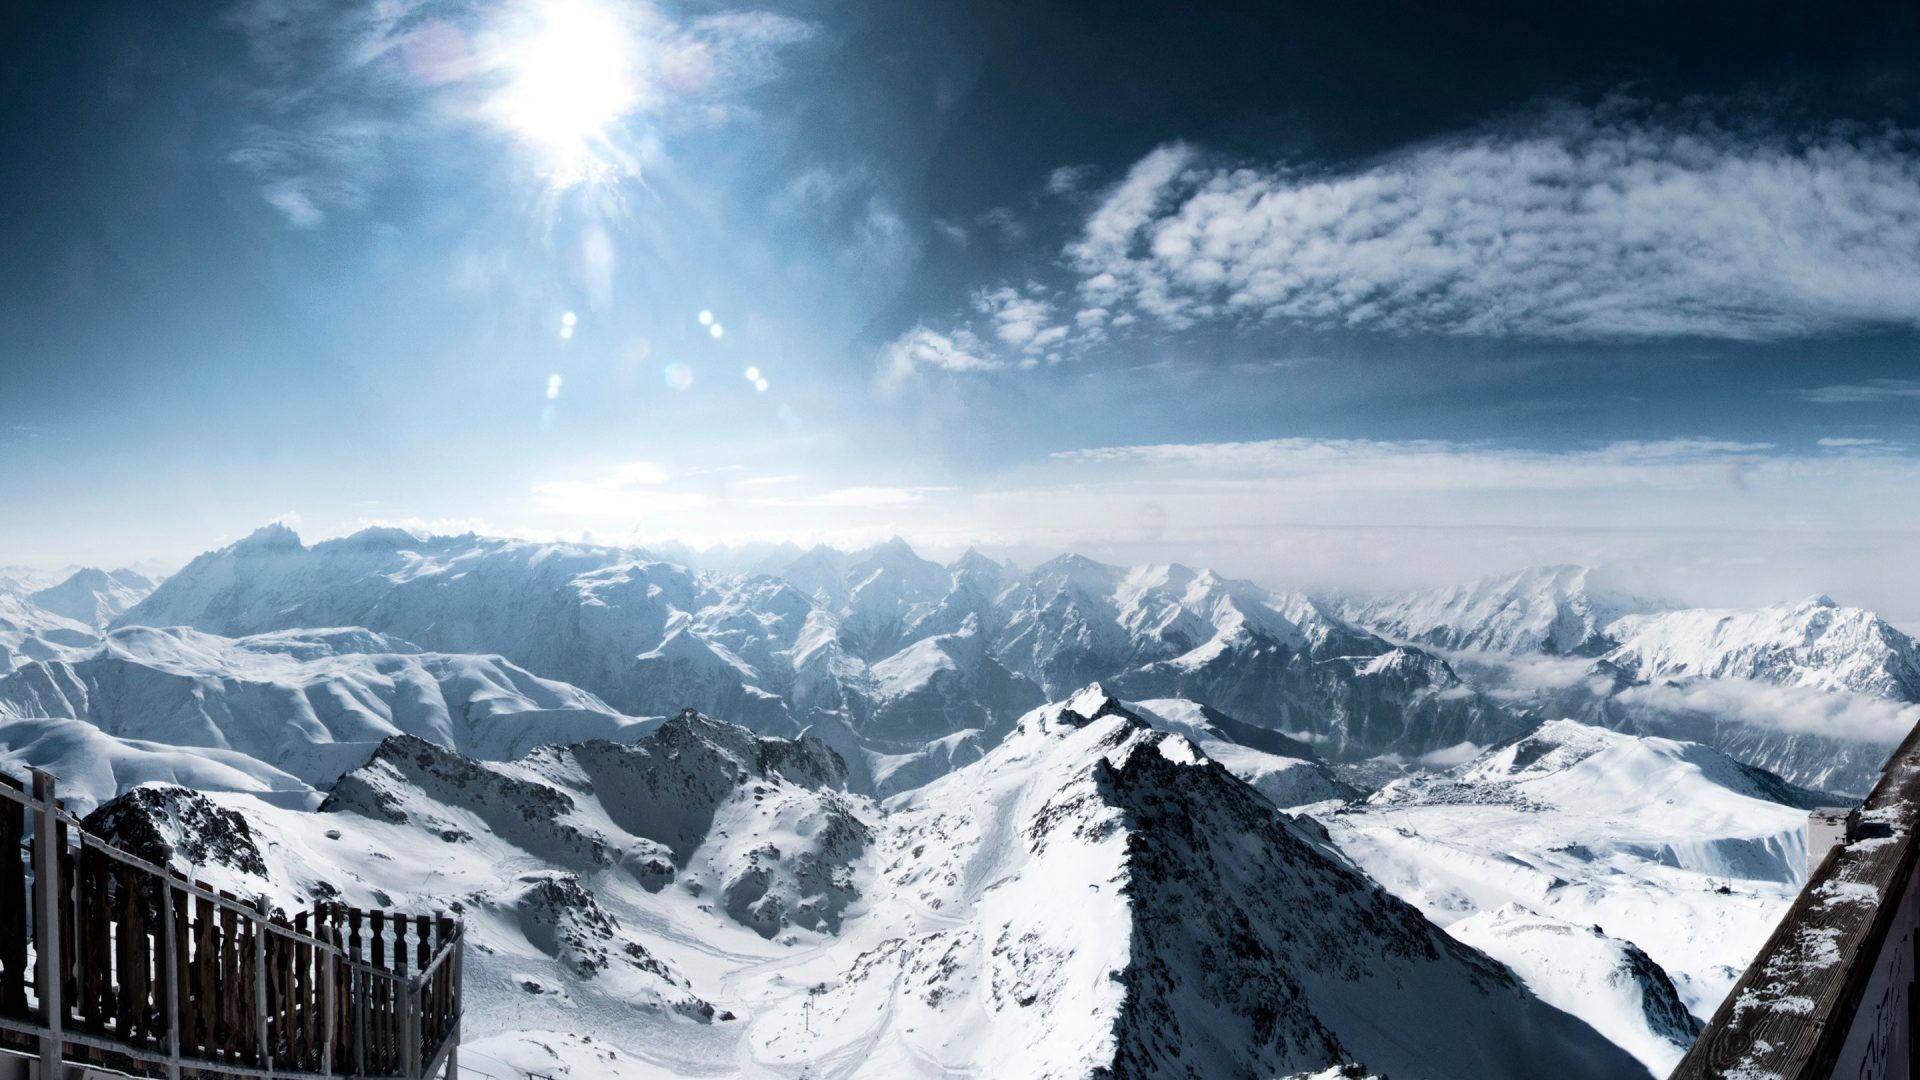 1920x1080 Mountains - Alps Snowy Nature Wallpapers Hd For Windows 8 for HD 16:9 High